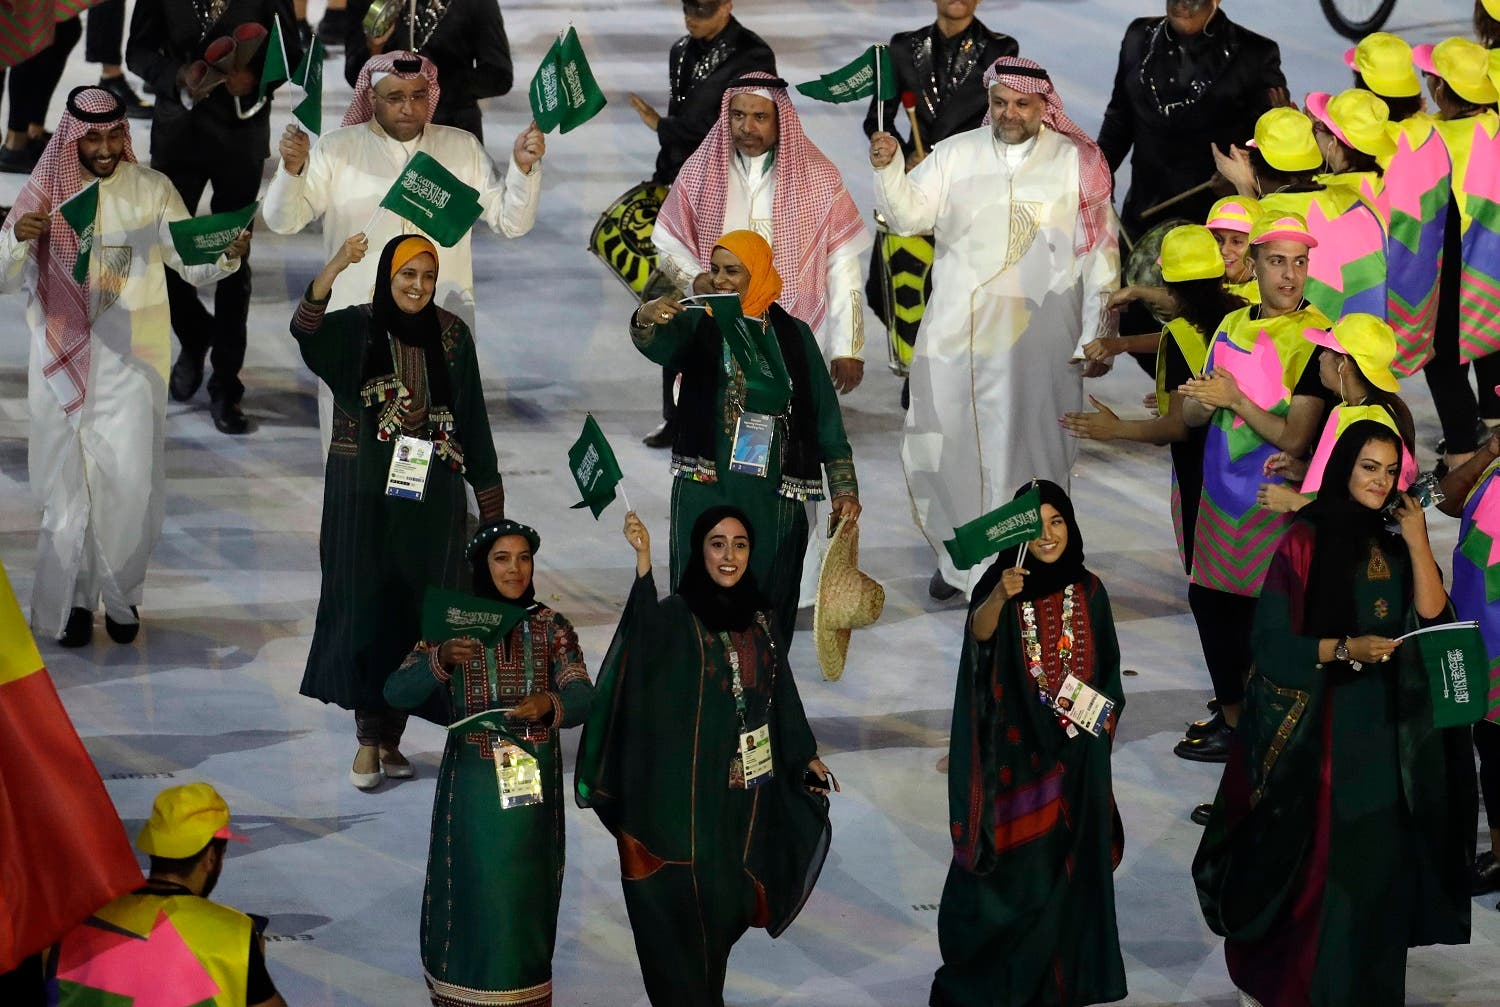 Team Saudi Arabia walks in the arena during the opening ceremony for the 2016 Summer Olympics in Rio de Janeiro, Brazil, Friday, Aug. 5, 2016. (AP)